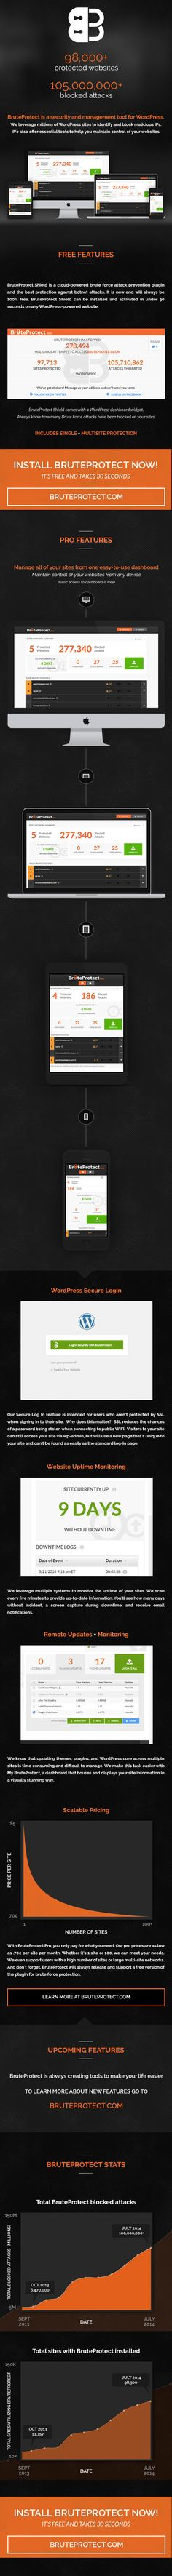 BruteProtect: WordPress Protection & Management by Parka LLC. #WordPress #security #management #software